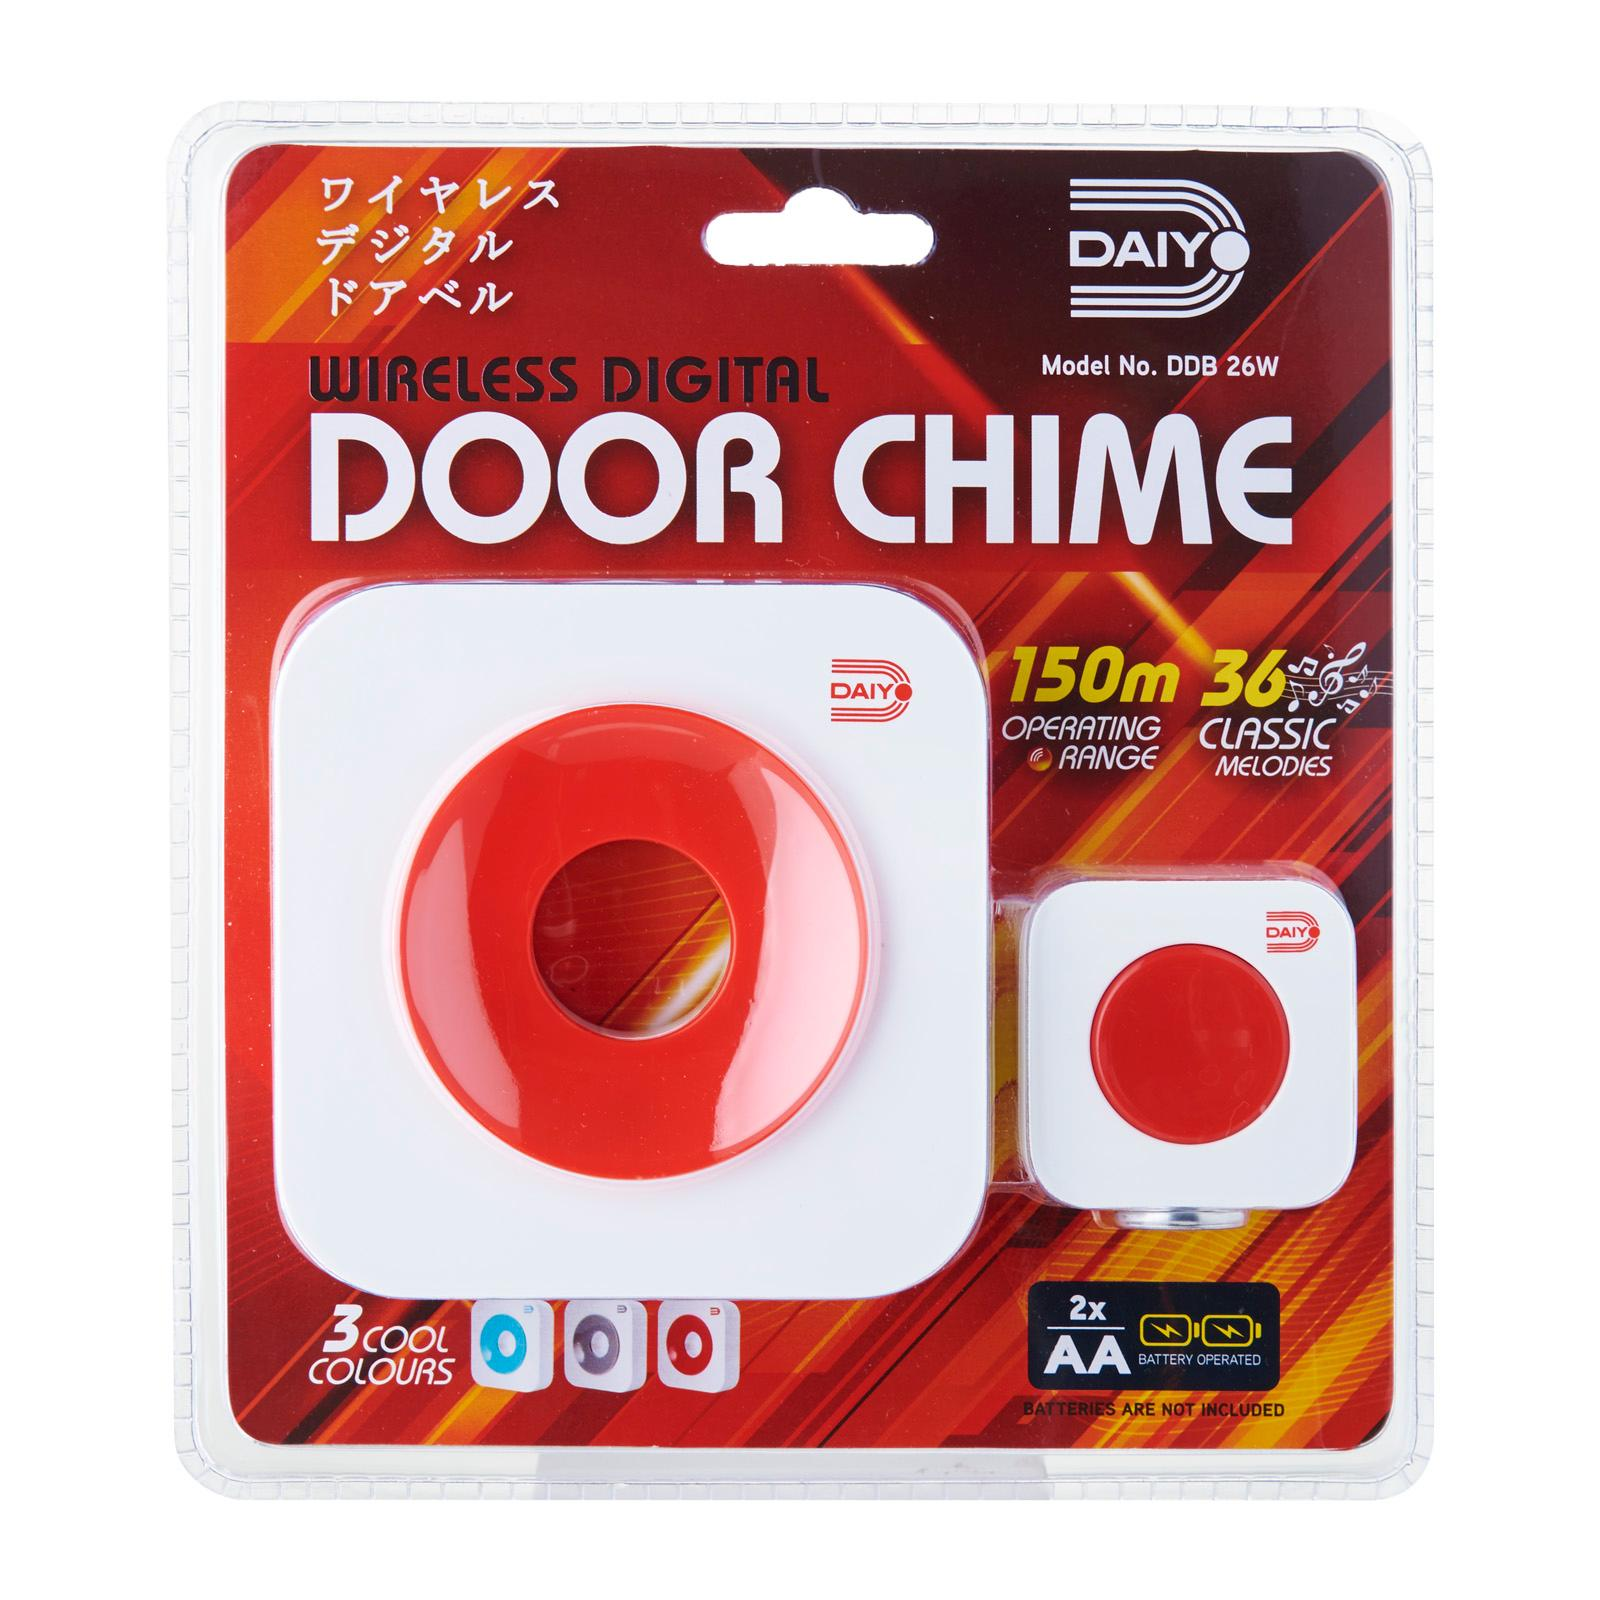 DDB 26WR Wireless Retro Door Chime (Battery) Red